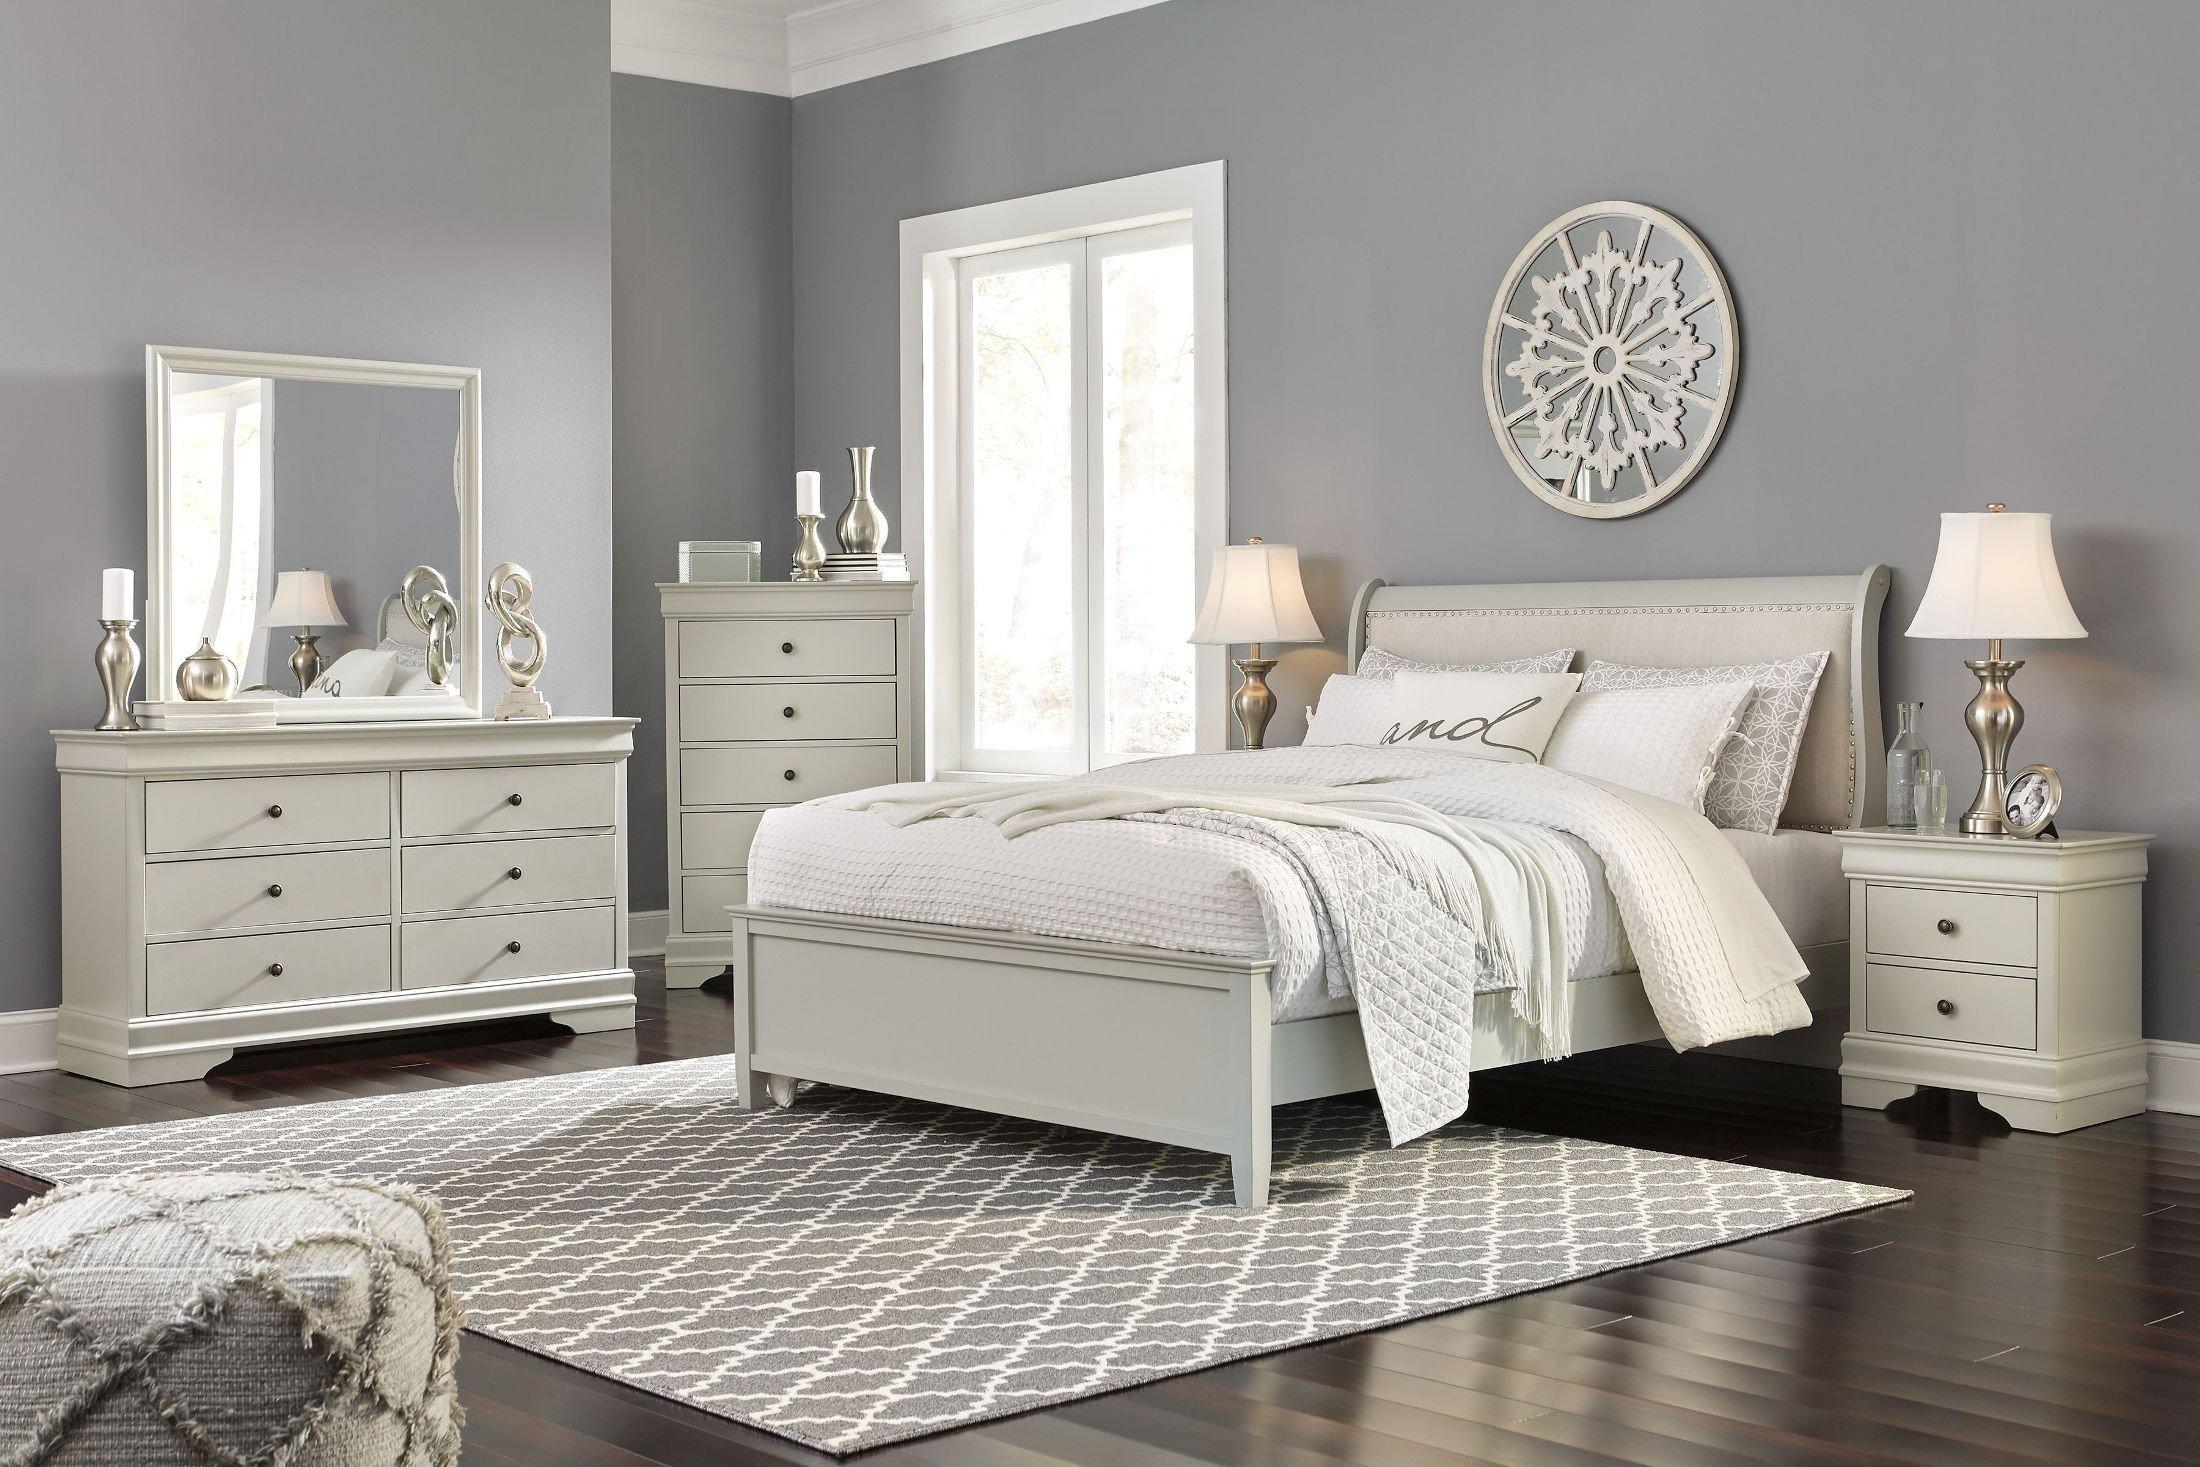 Paula Deen Bedroom Furniture Best Of Emma Mason Signature Jarred 5 Piece Sleigh Bedroom Set In Gray